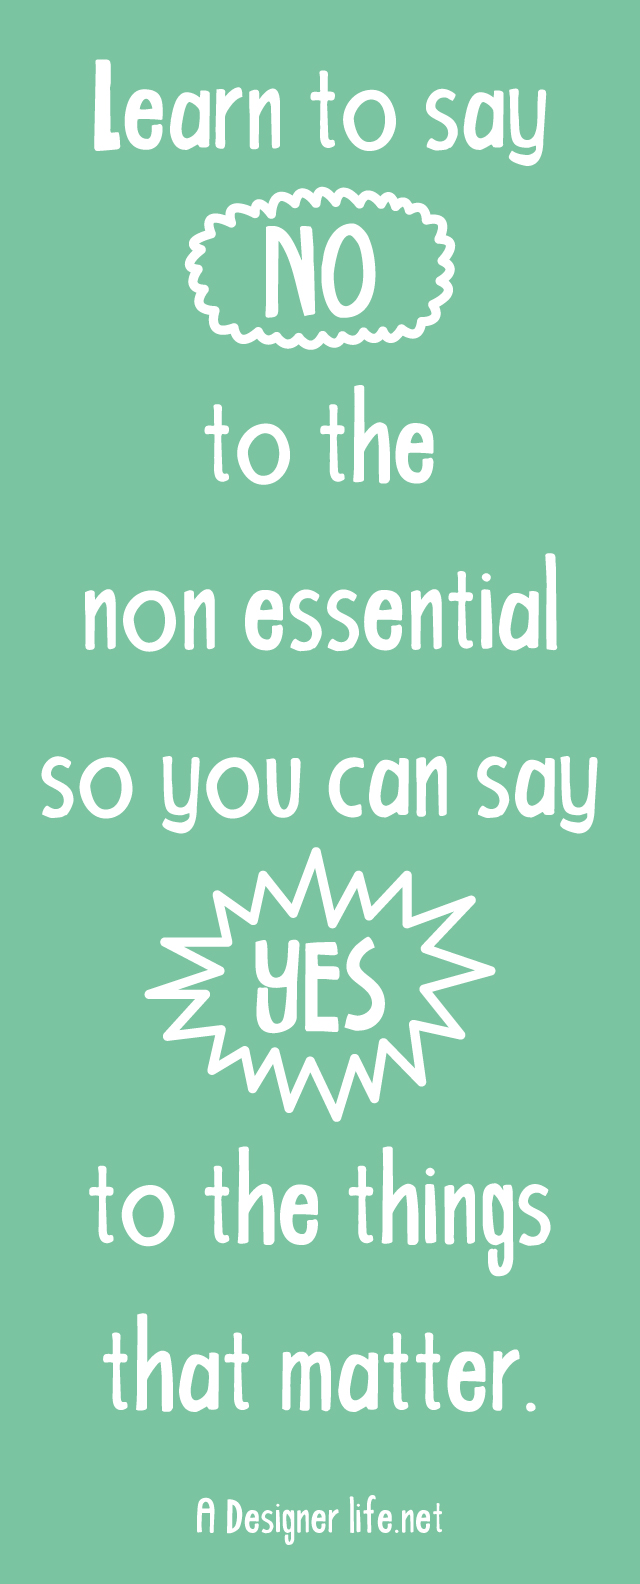 Learn to say NO to the non essential so you can say YES to the things that matter | inspirational quote